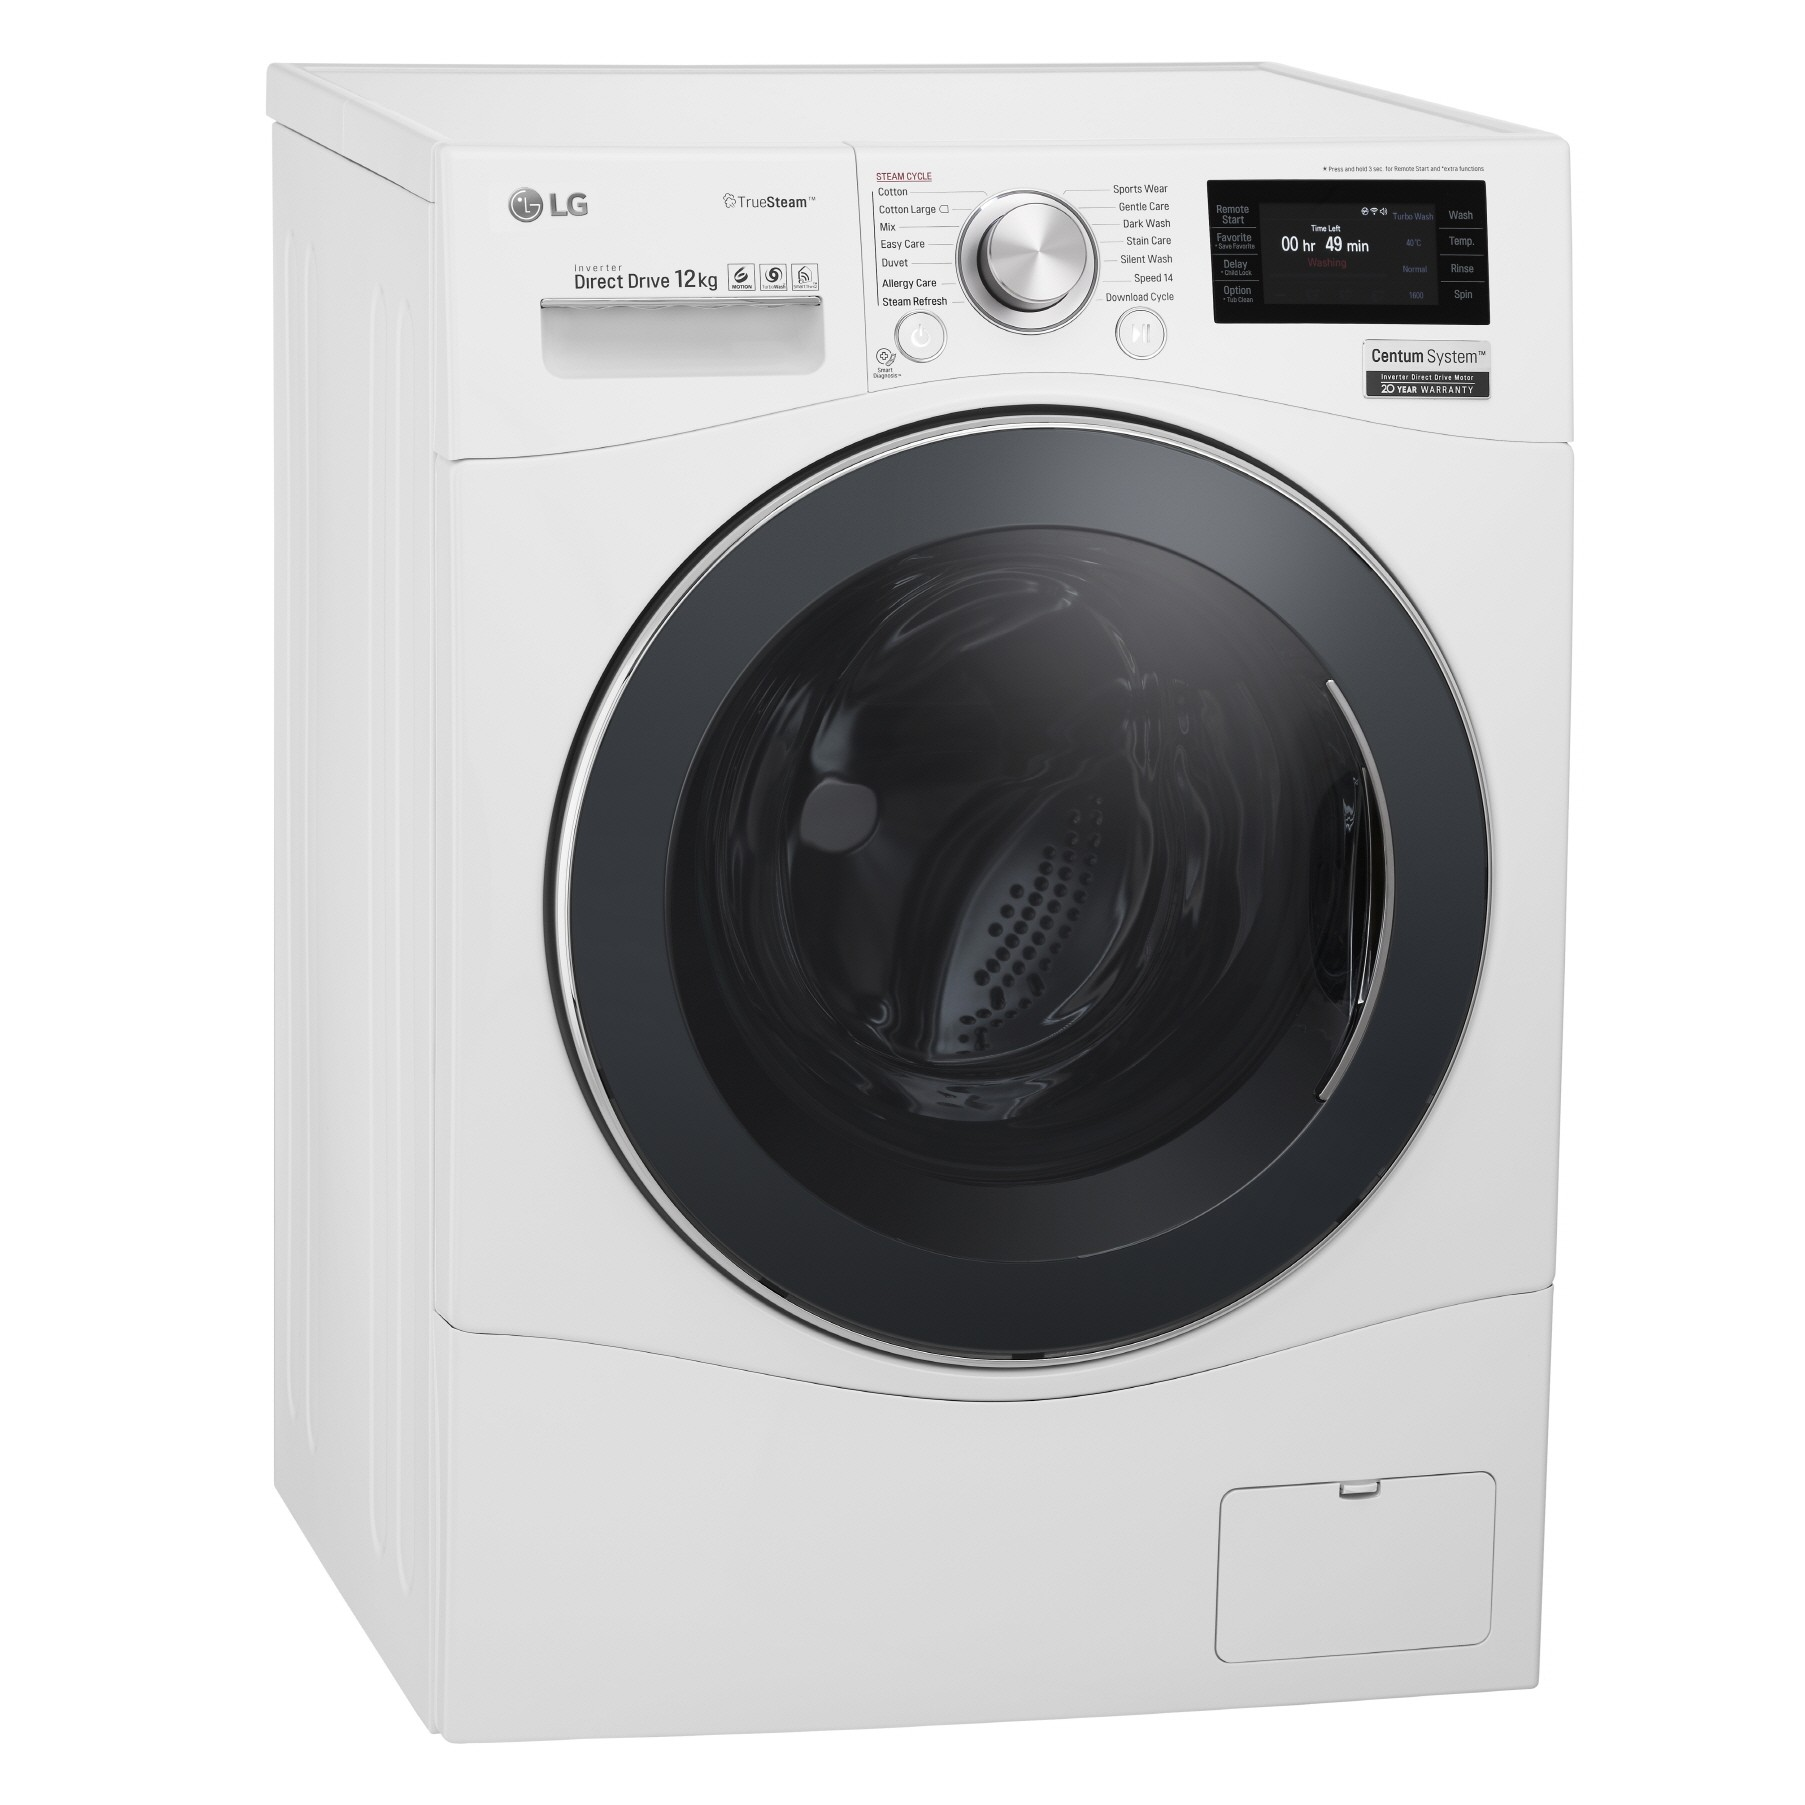 Side view of LG front-load washing machine